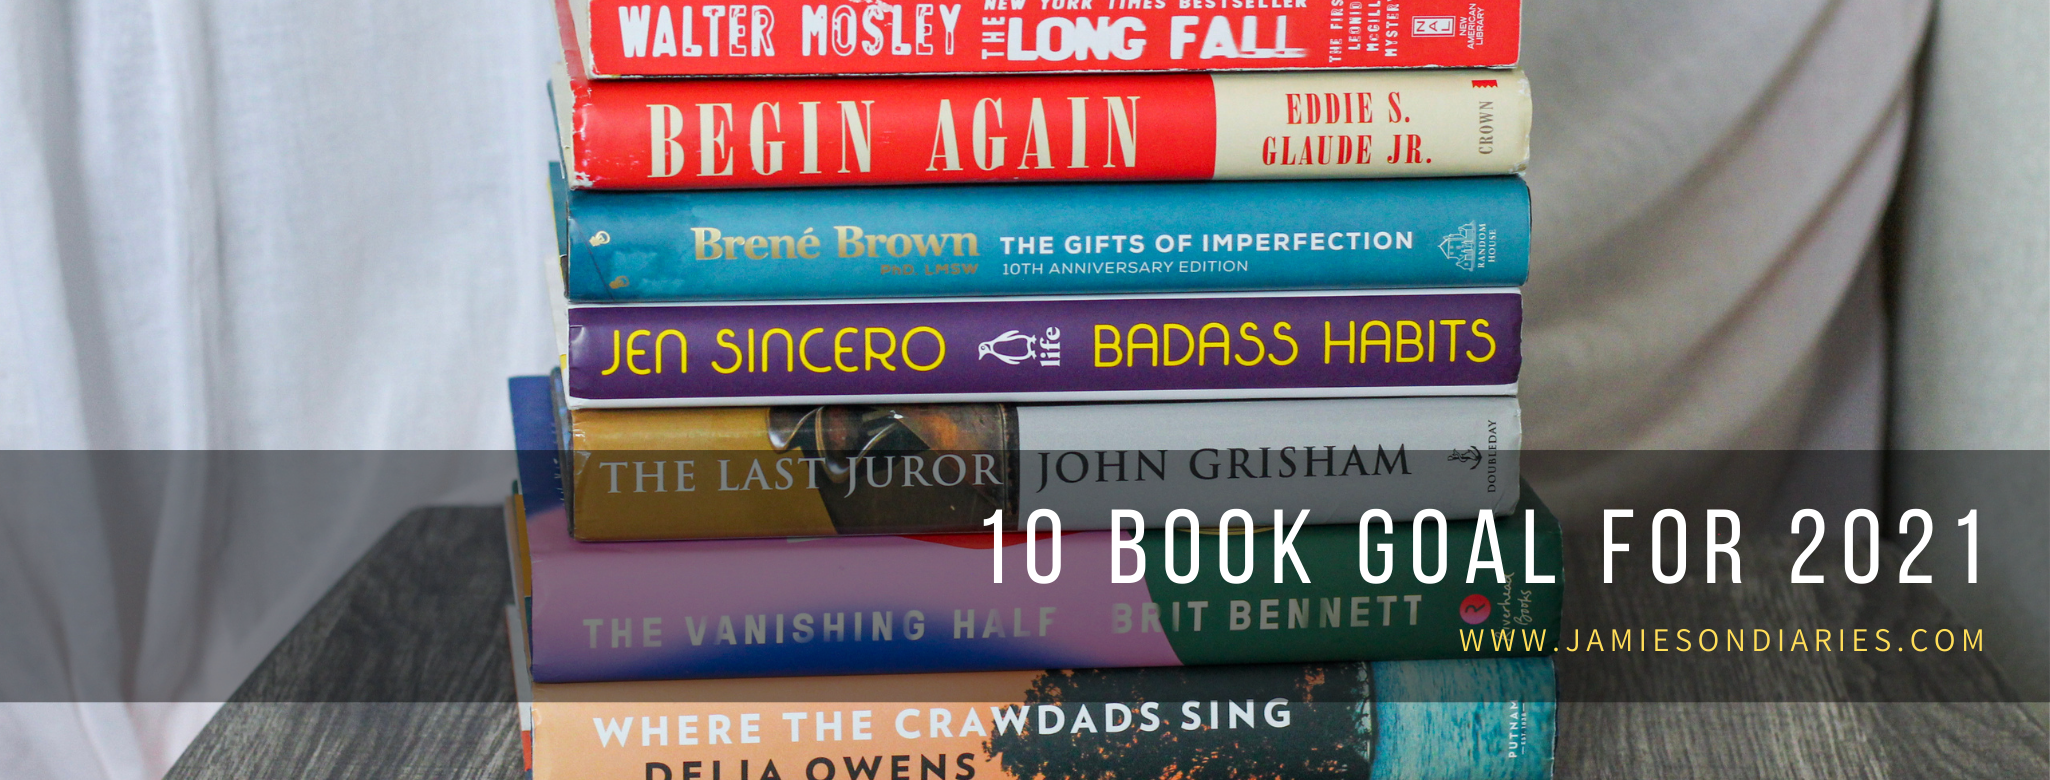 10 book goal for 2021